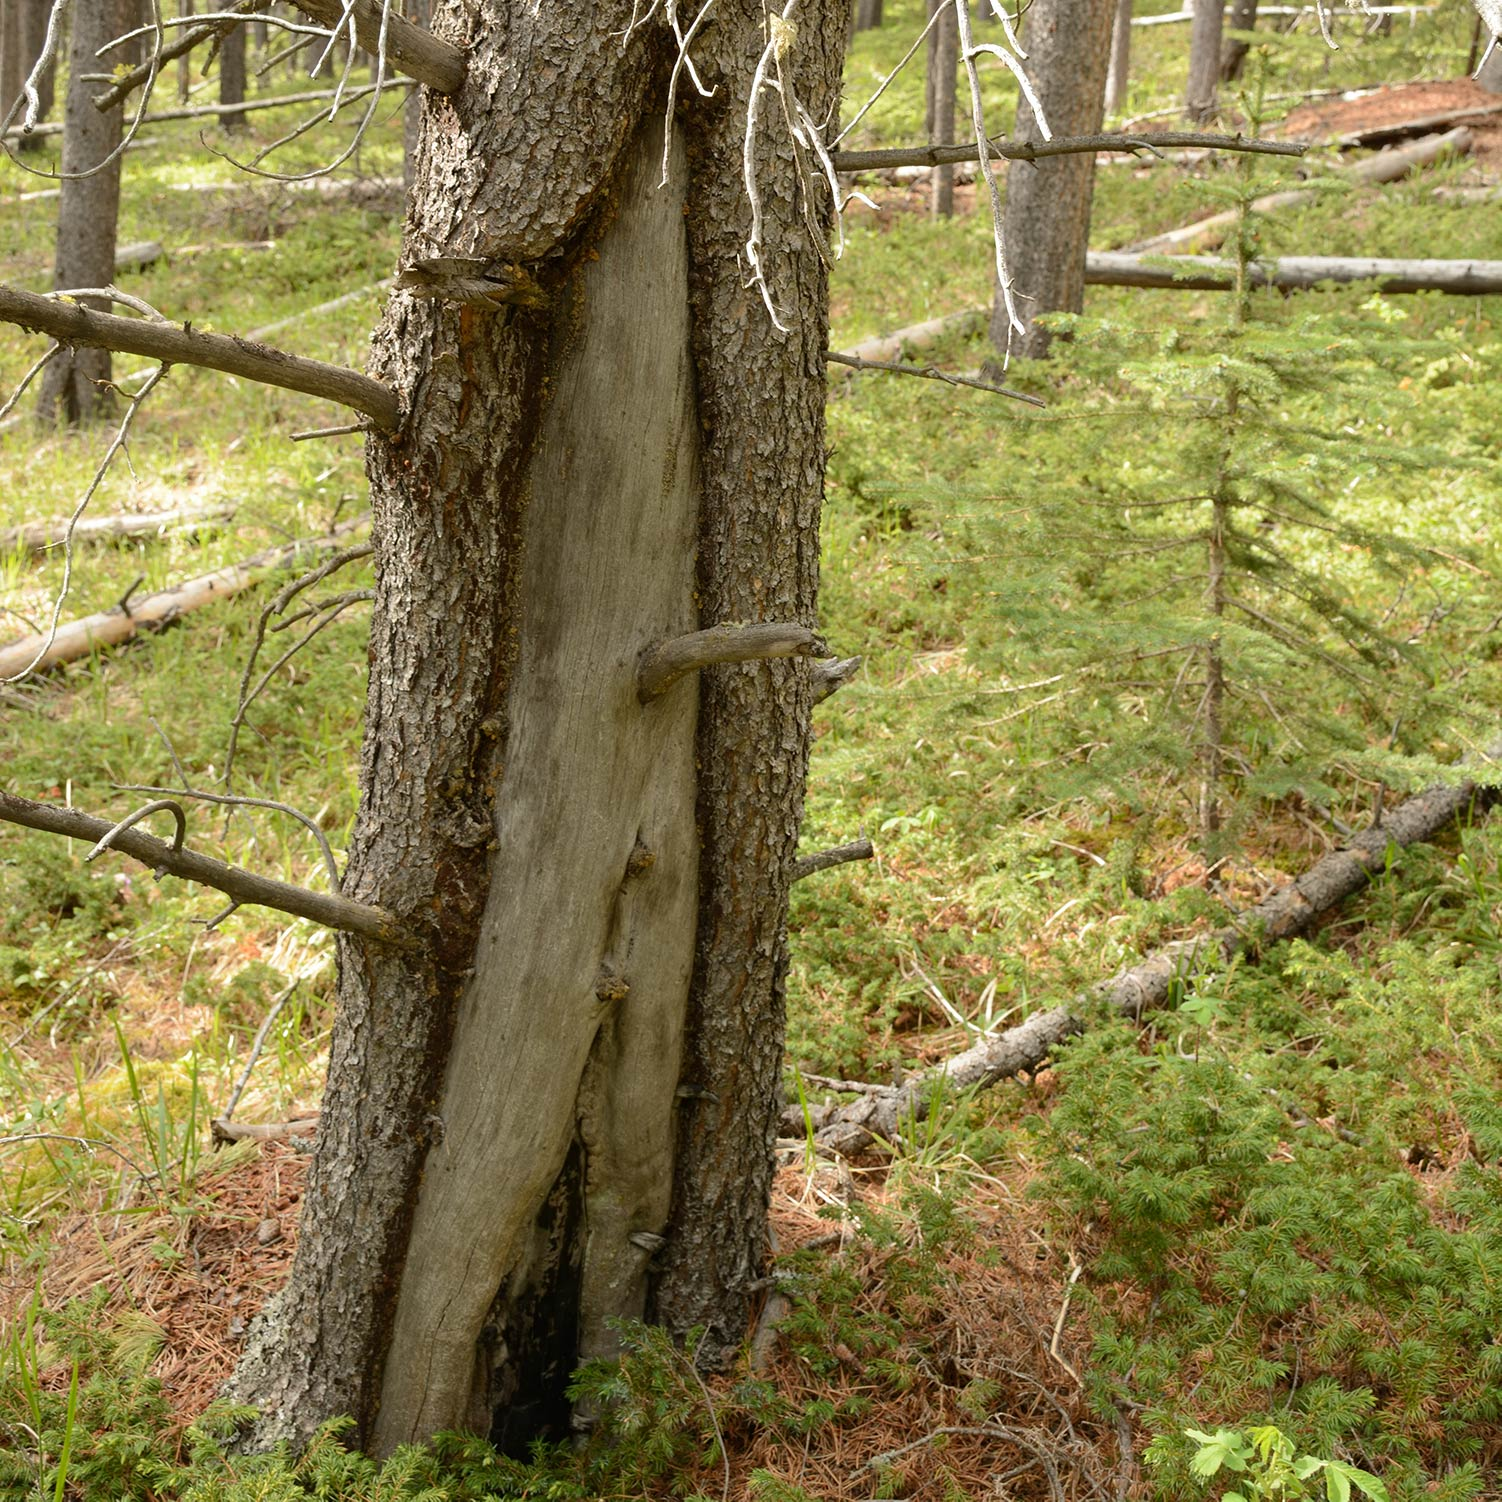 The story told by tree scars is an important component of Landscapes in Motion.